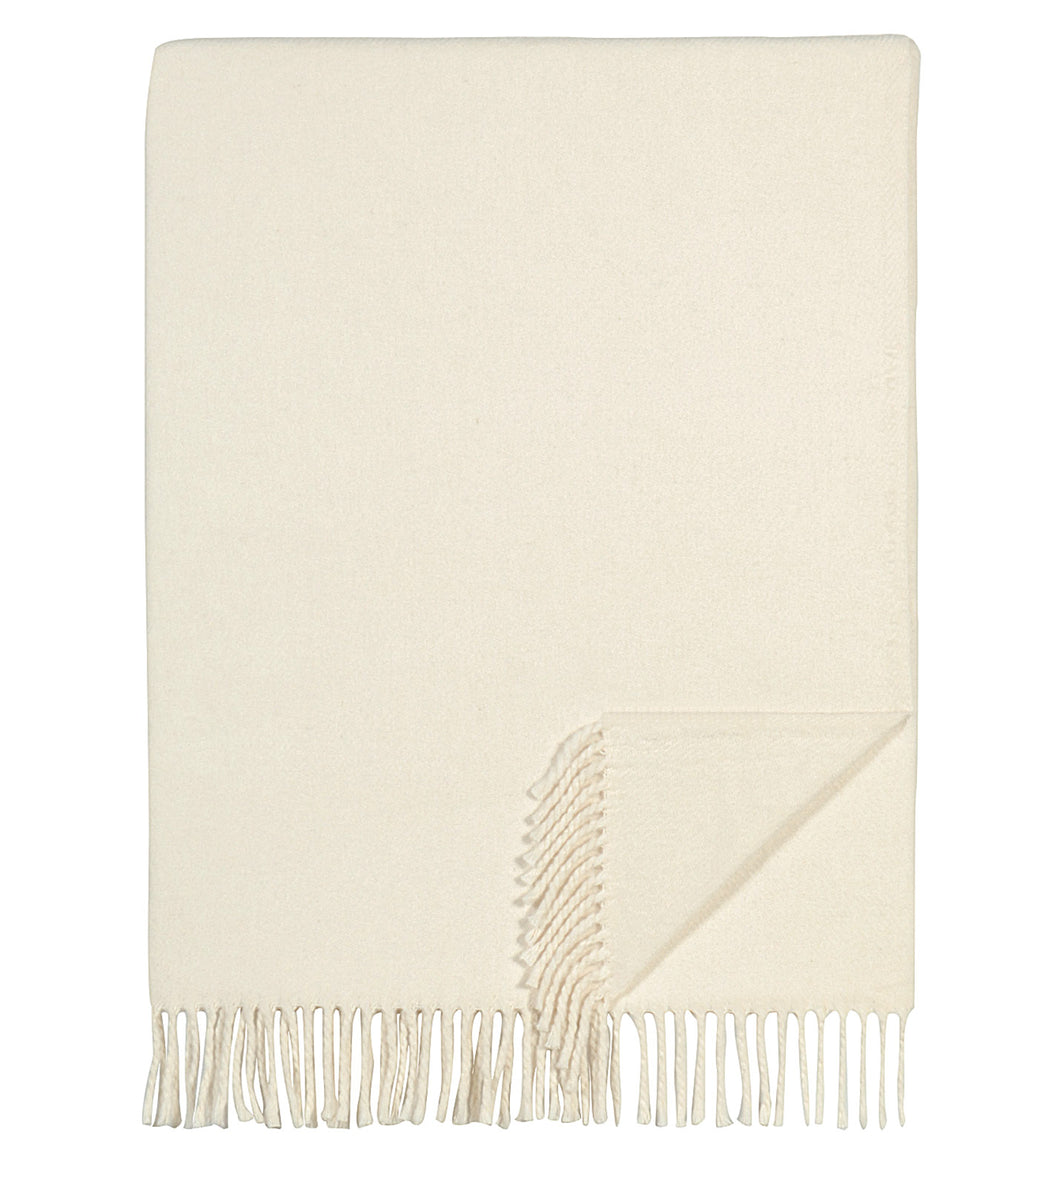 Cream Solid Rustic Blanket with Tassels